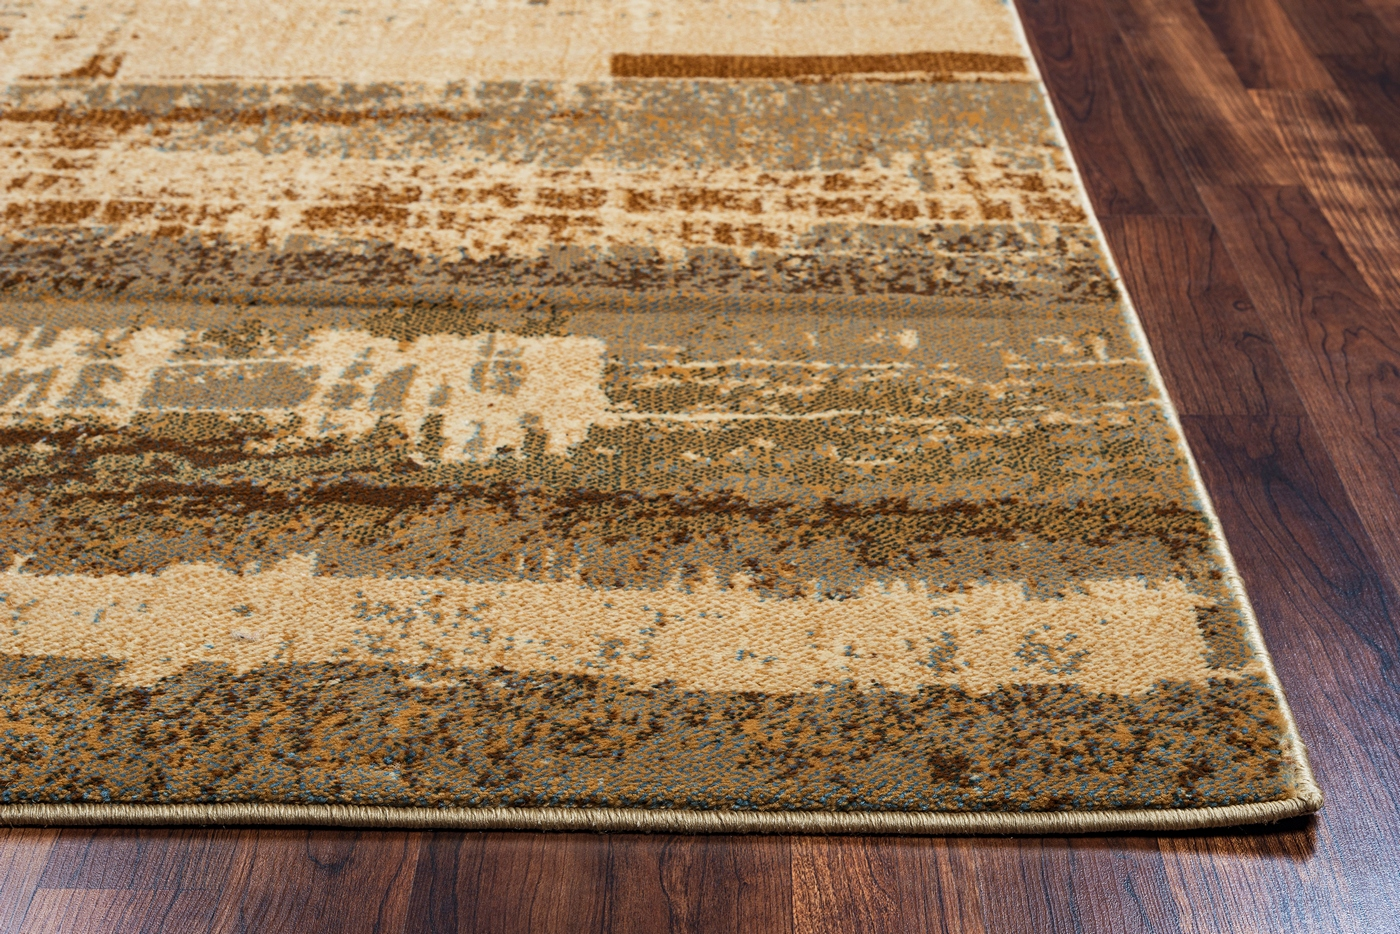 "Grey Tan And Brown Area Rug: Bellevue Abstract Banded Area Rug In Tan & Gray, 9'2"" X 12'6"""